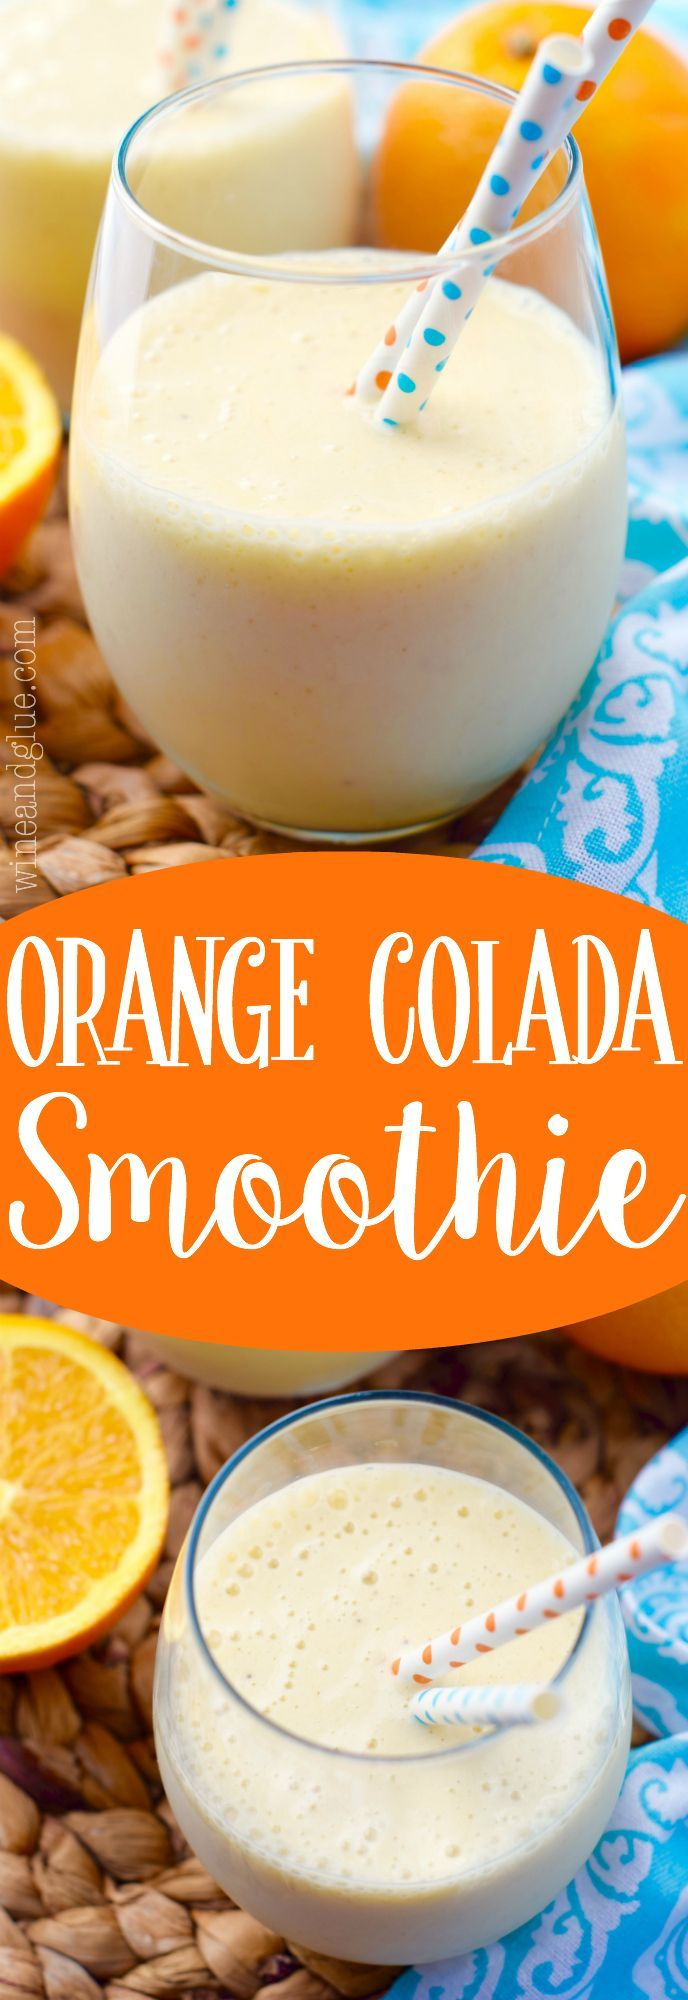 This Orange Colada Smoothie is light and healthy. A perfect breakfast or afternoon snack!